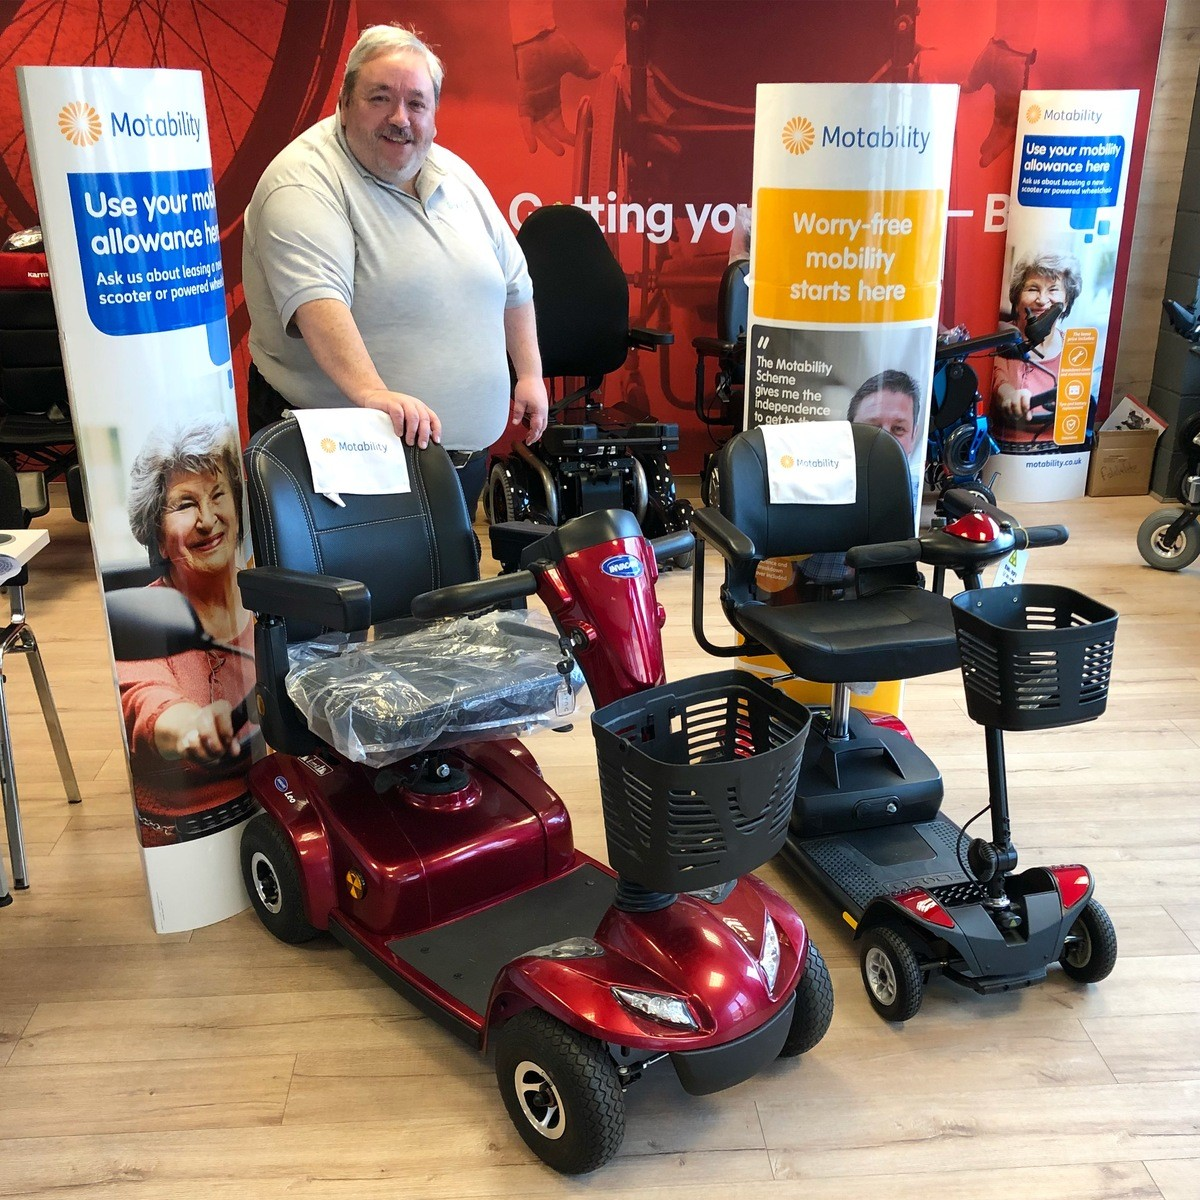 The motability scheme explained by Jim at Sync Living